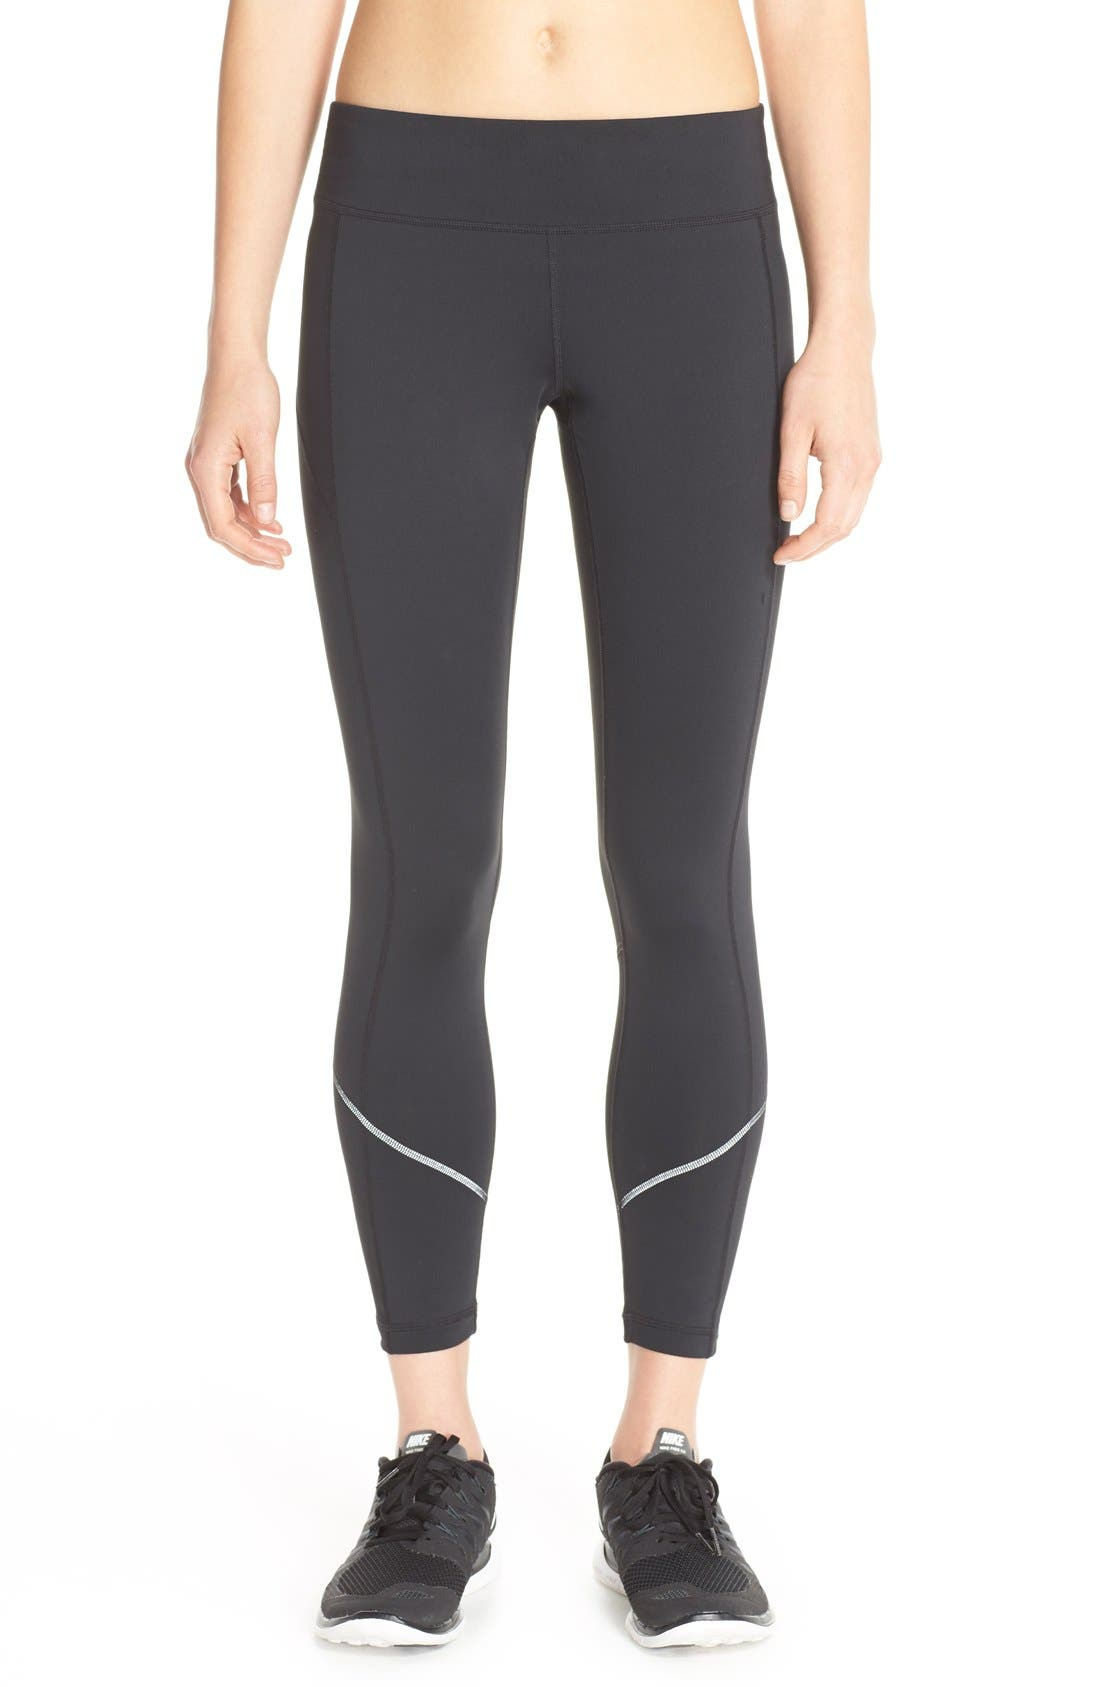 Main Image - Zella 'Fly By' Running Midi Tights